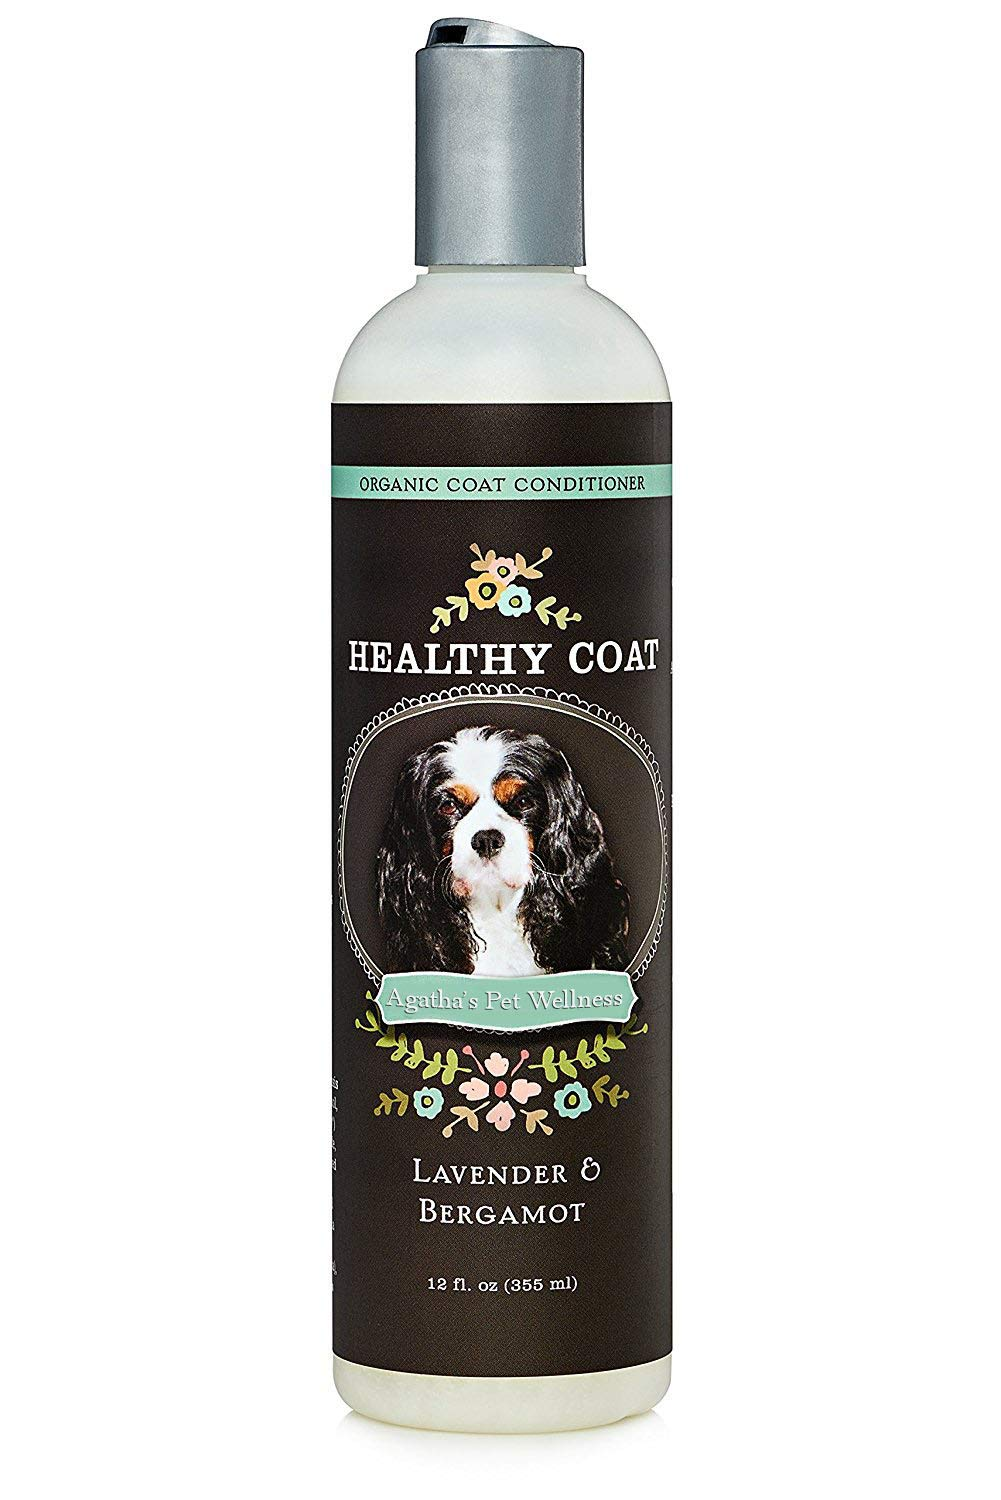 Agatha's Luxury Organic Lavender & Bergamot Dog Conditioner & Detangler - Nourishing & Soothing, for Healthy & Easy to Brush Coats ● Hypoallergenic, Sulphate Free ● 12oz by Agatha's Pet Wellness